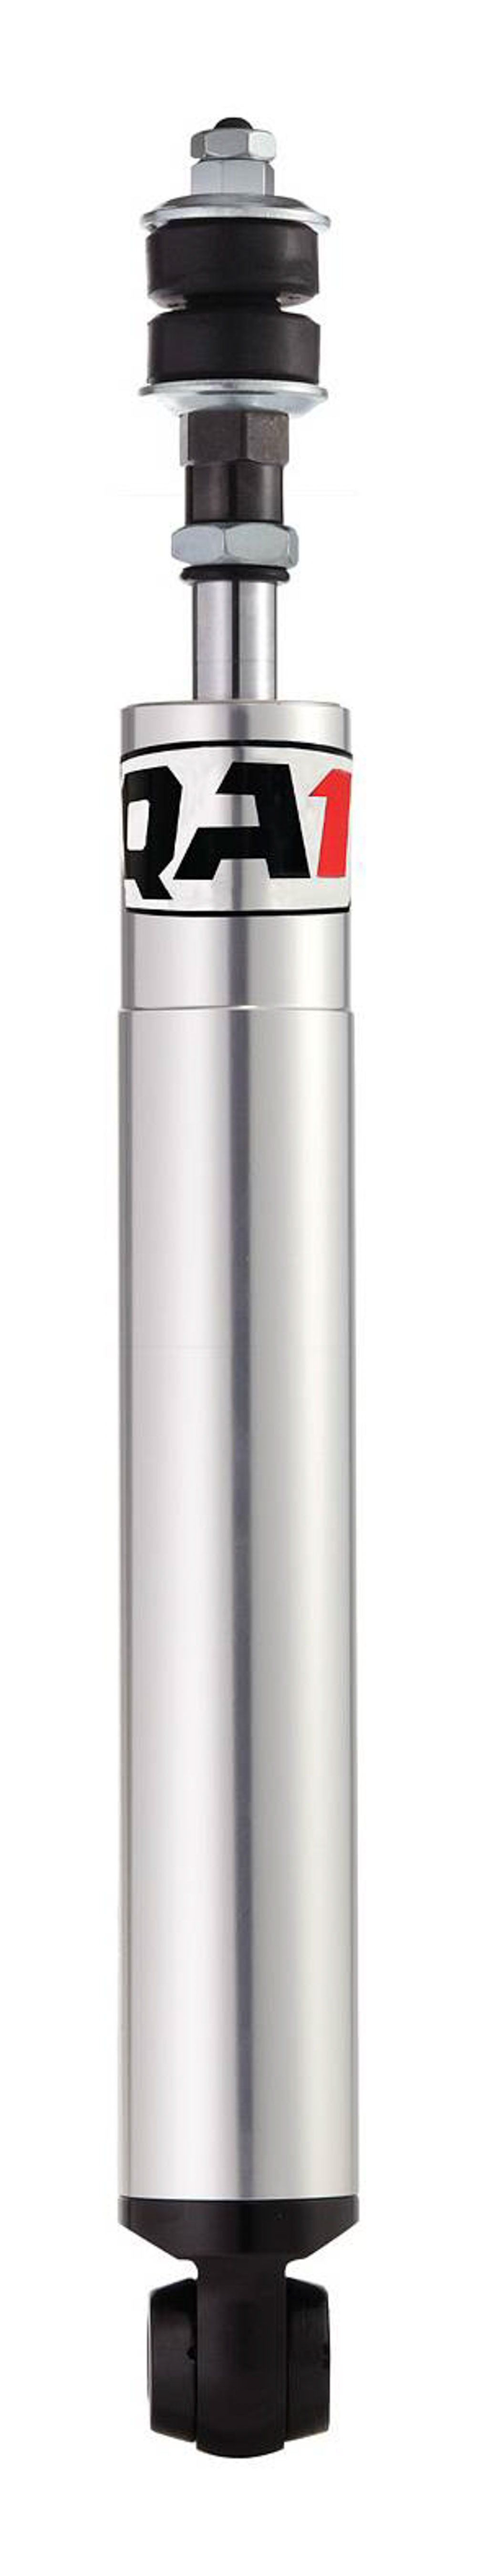 QA1 TN703 Shock, Stocker Star, Twintube, 12.13 in Compressed/18.75 in Extended, Aluminum, Natural, Each